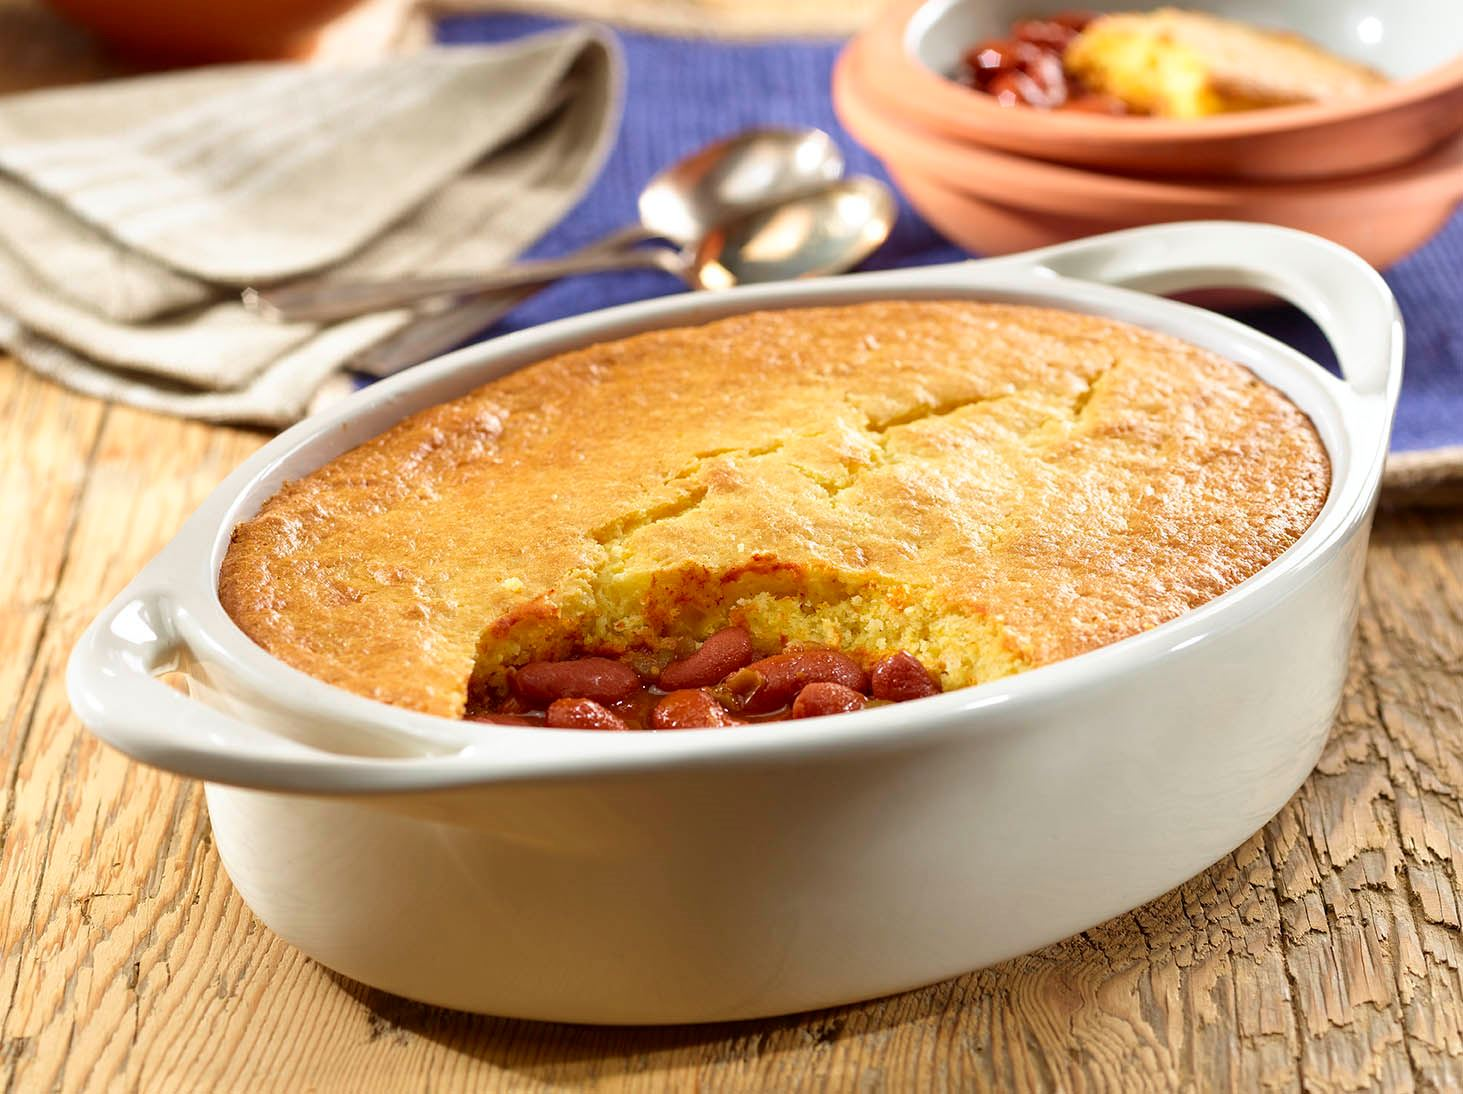 Cornbread-Topped Red Kidney Bean Chili